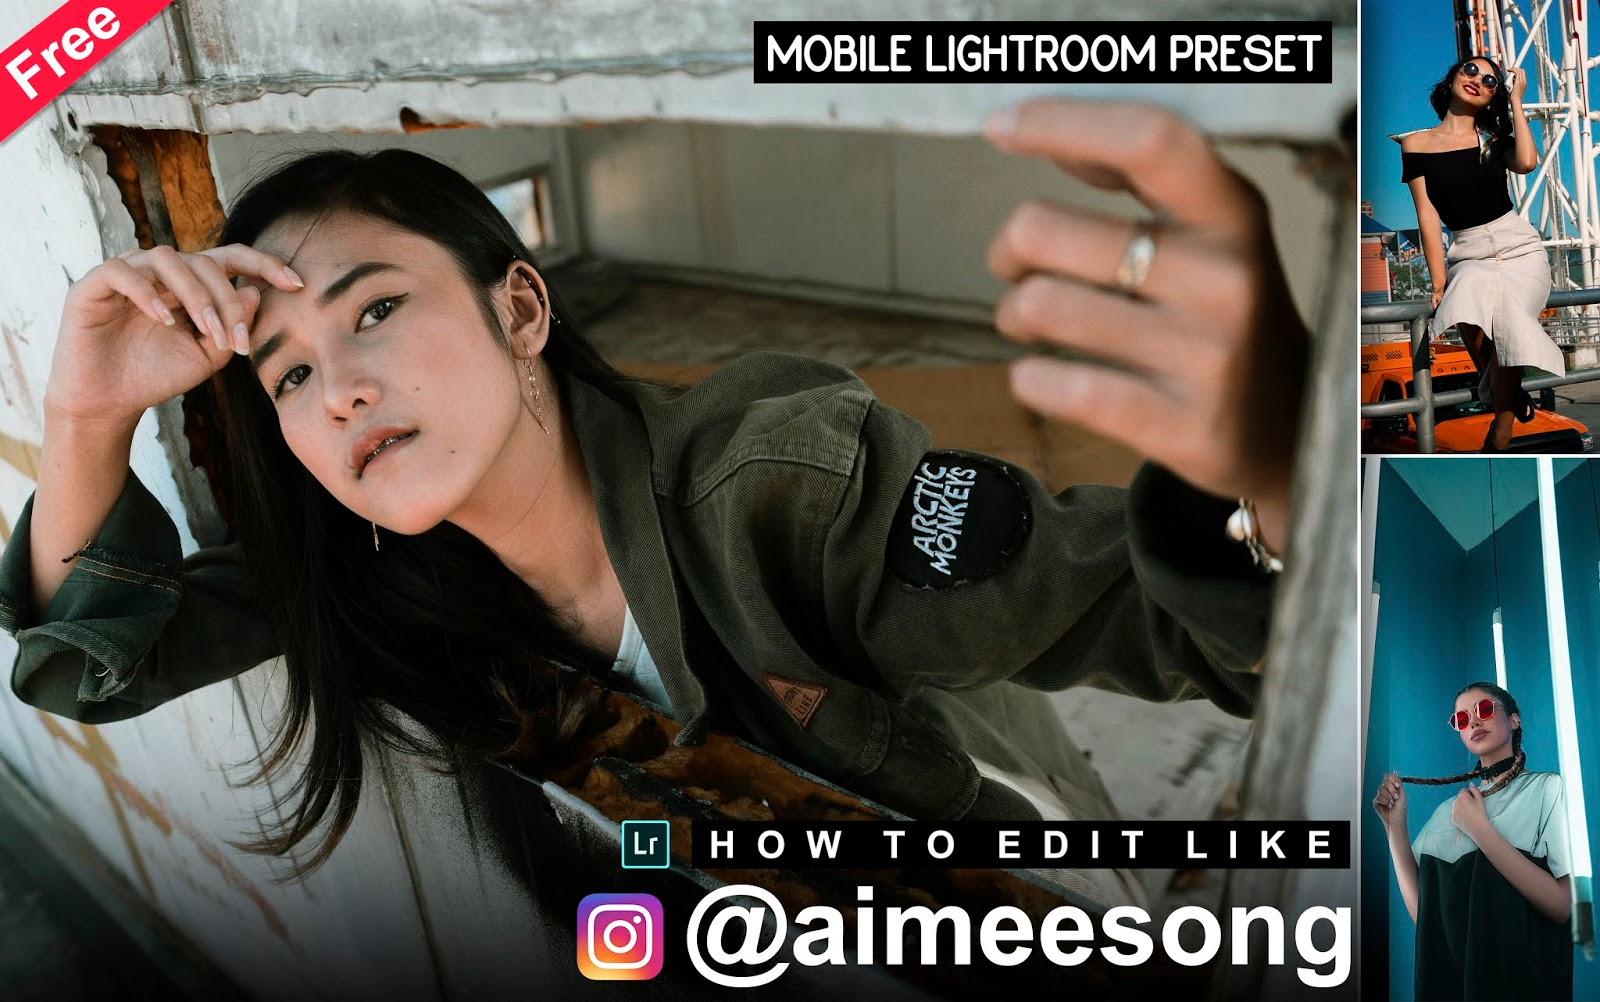 Download Aimeesong Inspired Mobile Lightroom Preset for Free   How to Edit Your Photos Like @aimeesong in Mobile Lightroom App